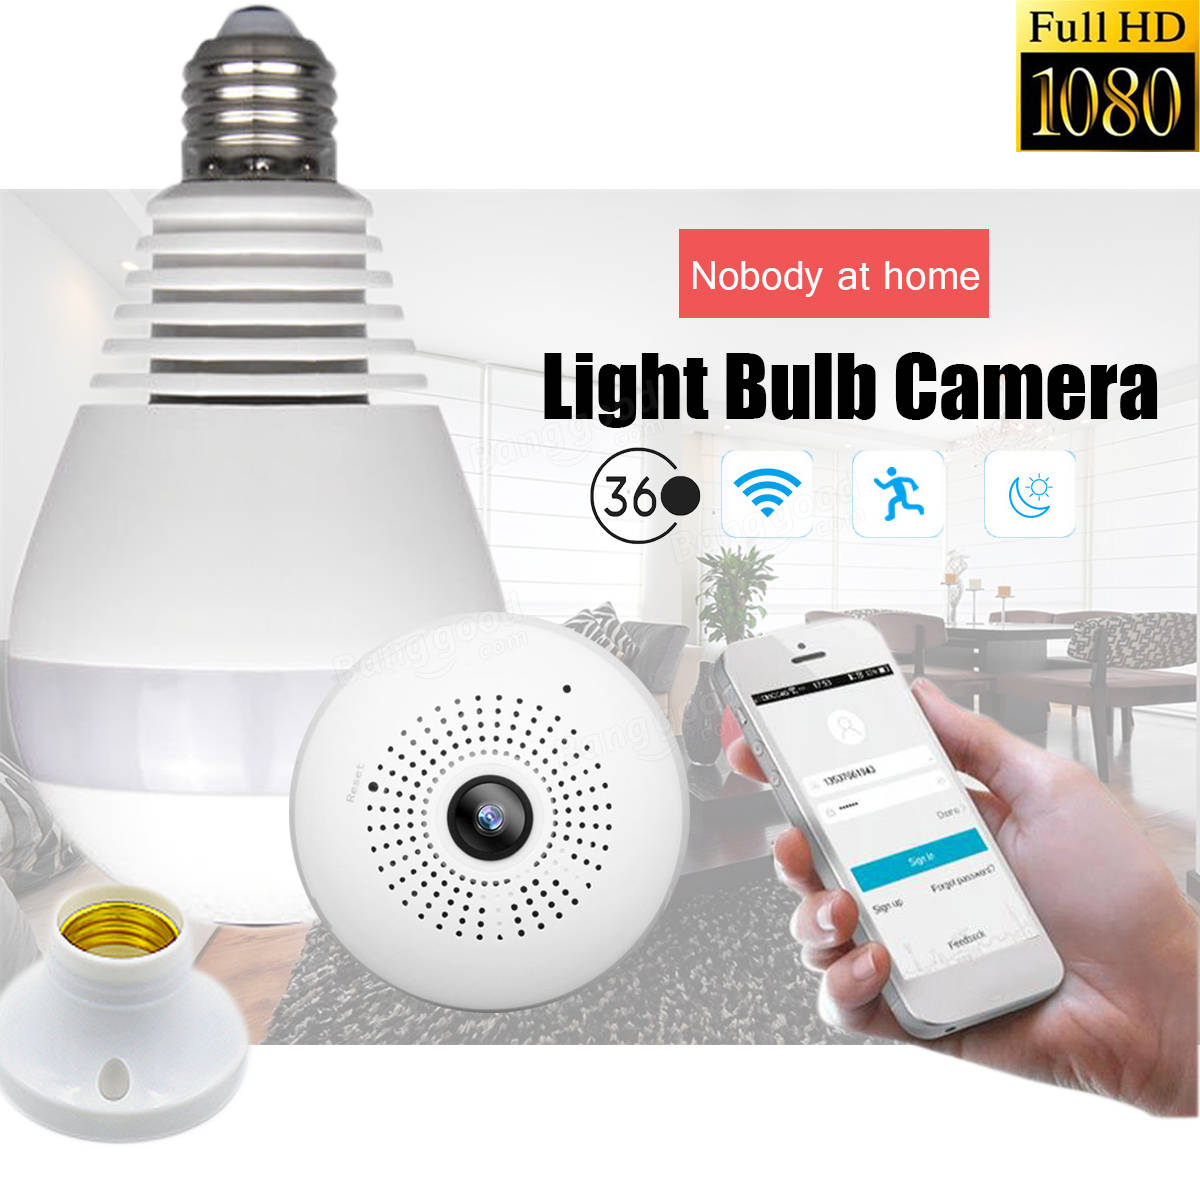 E27 360° Panoramic 1080P IR Camera Light Bulb Wifi Fisheye ...